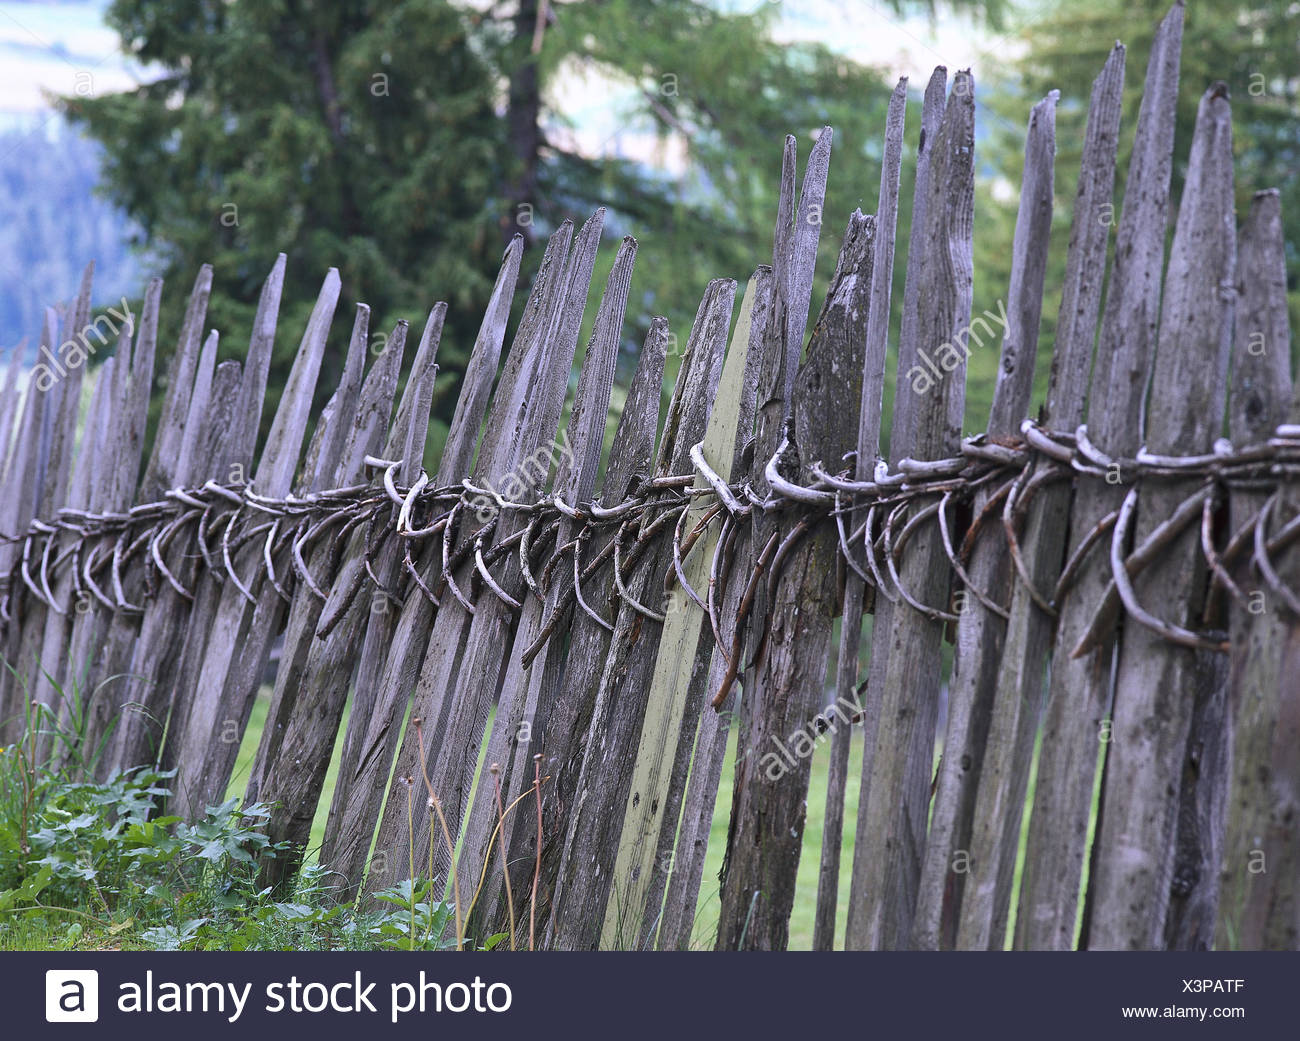 Italy, South Tyrol, Villnößtal, wooden fence, rurally, old, trees ...